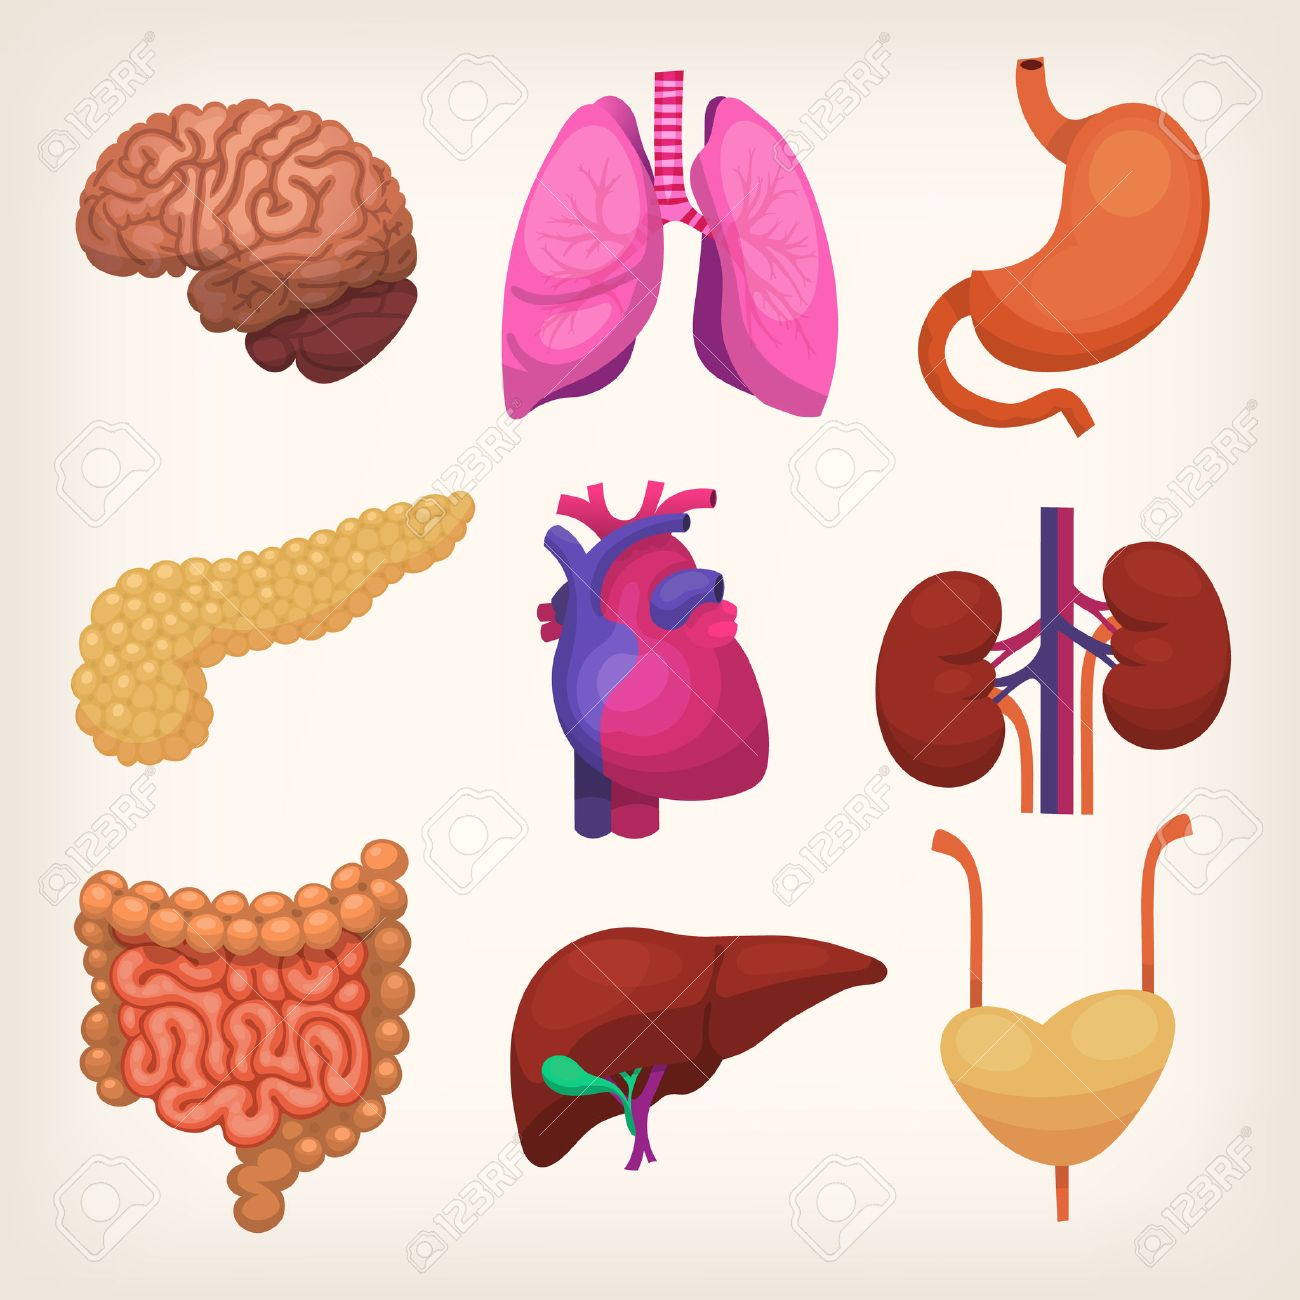 Set Of Colorful Realistic Human Body Organs Royalty Free Cliparts ...